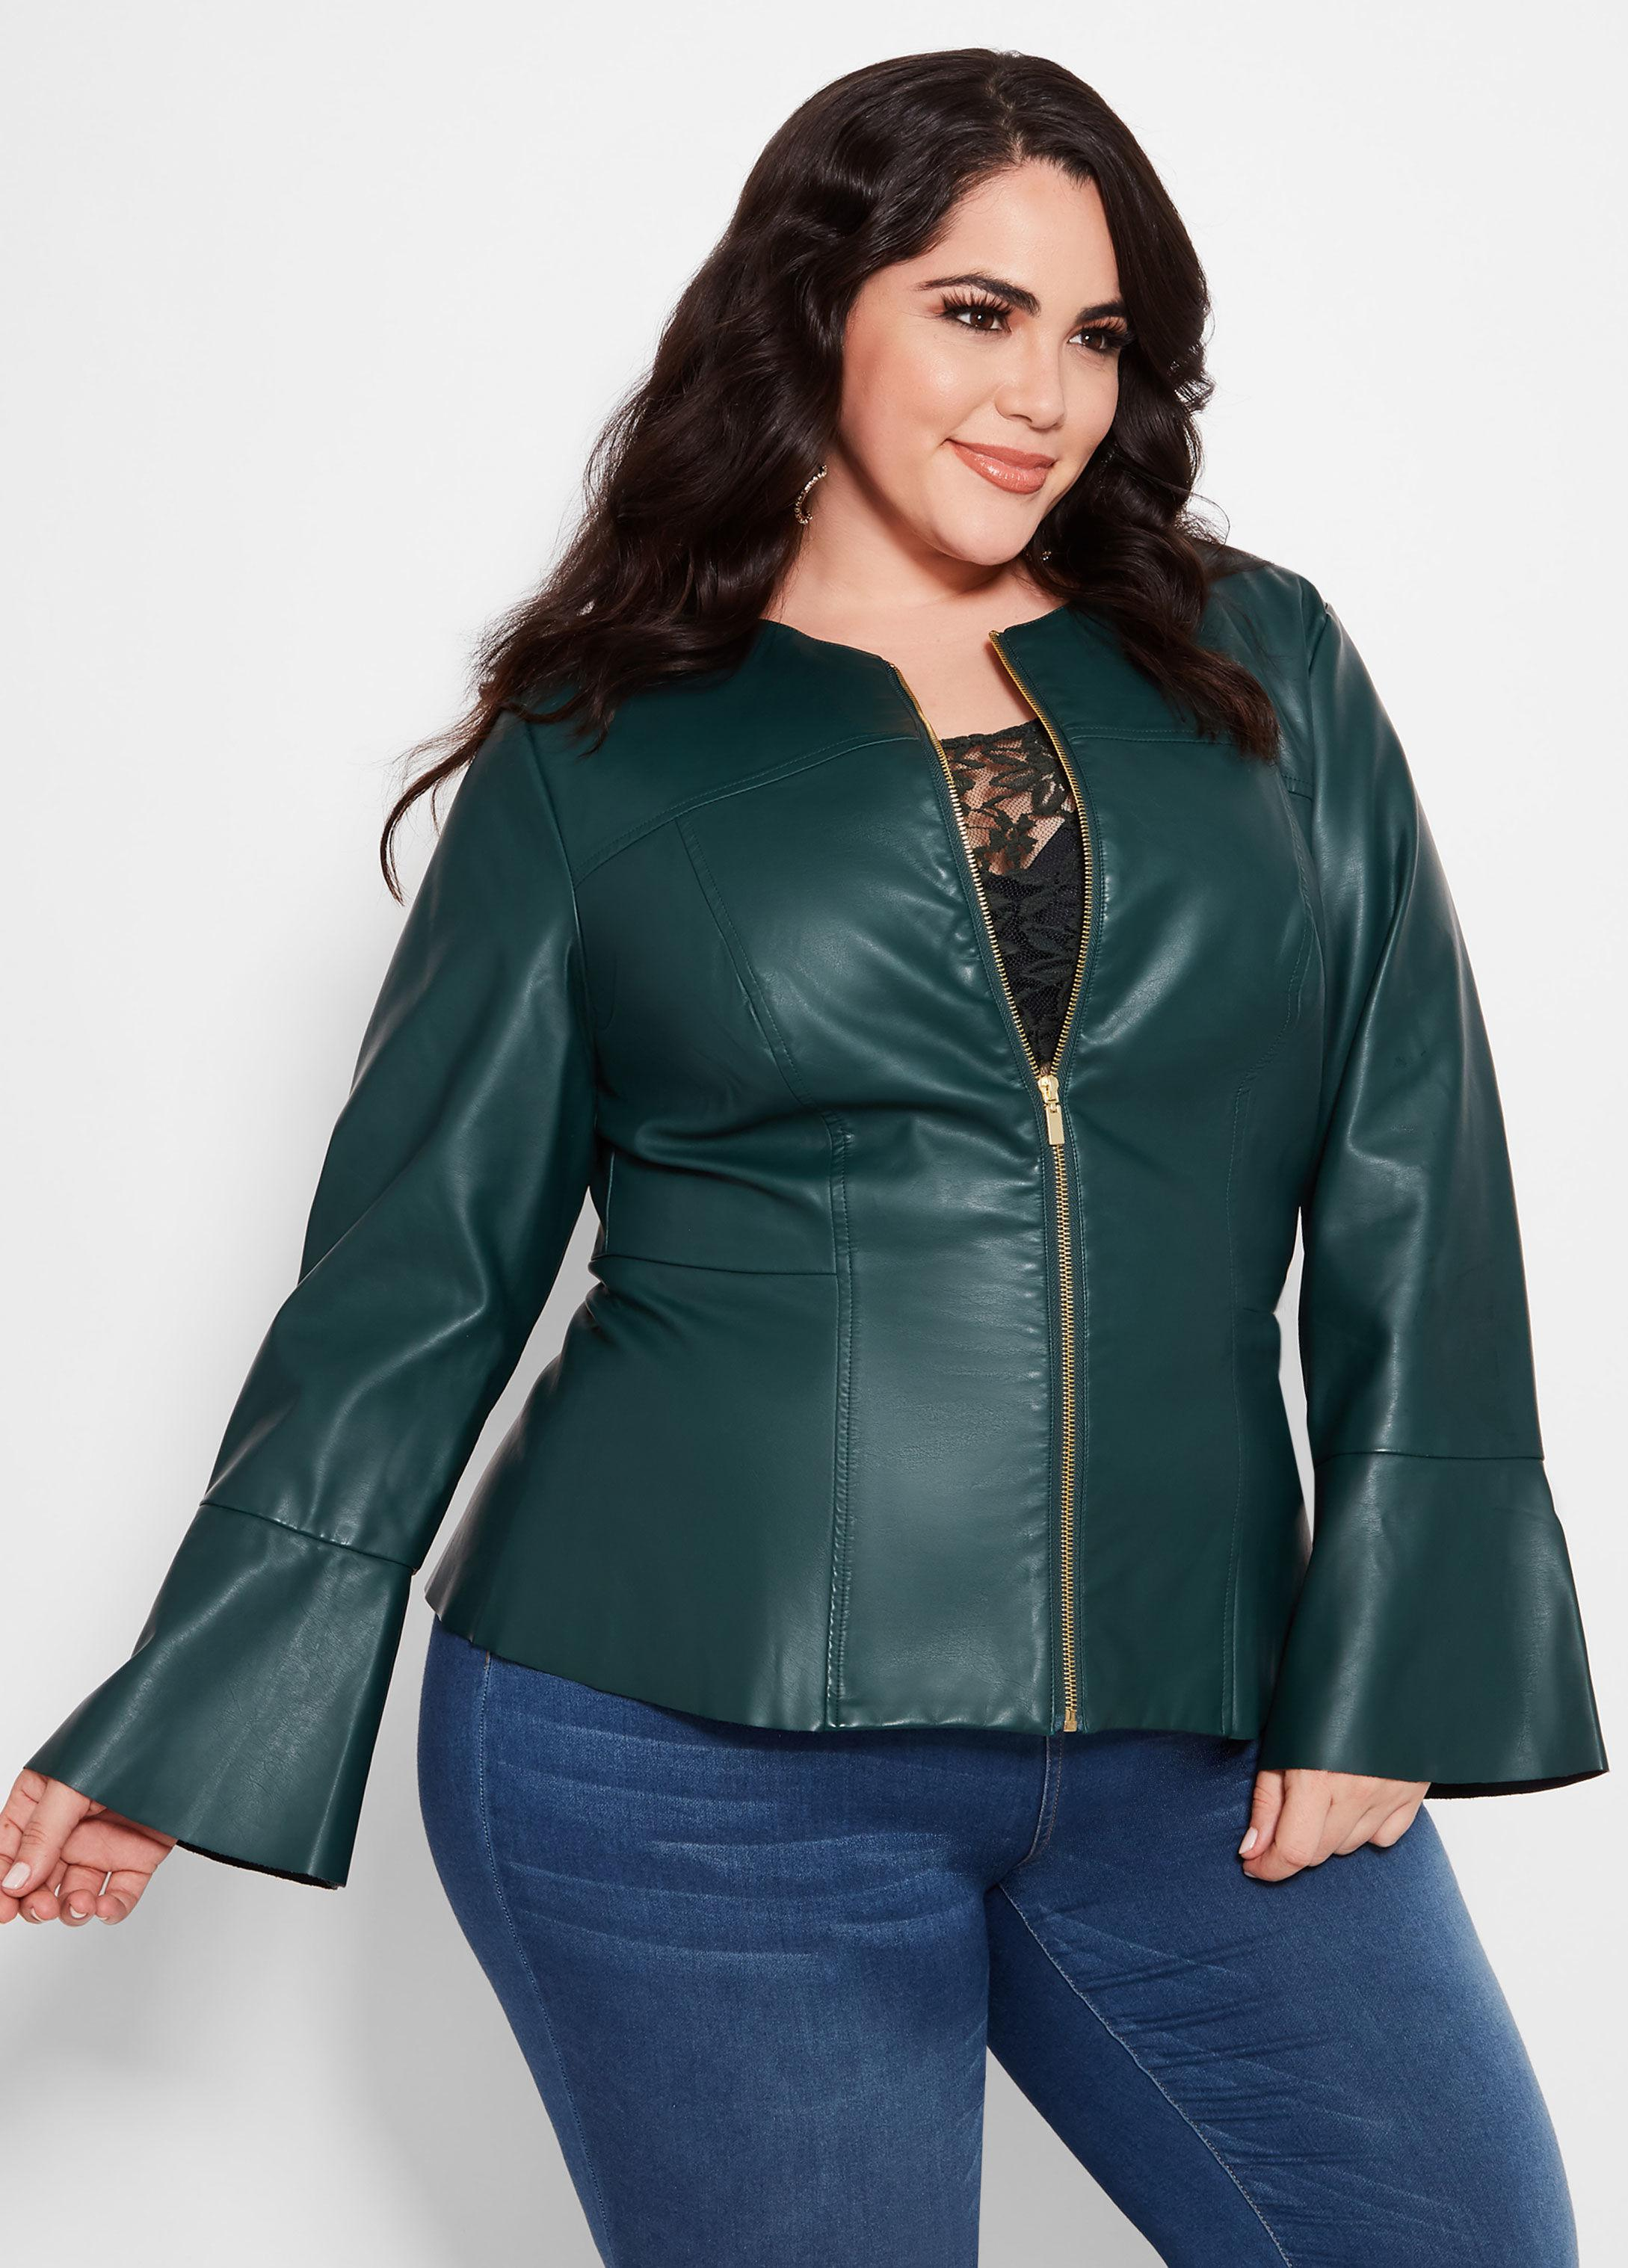 ccb0a89d132 Ashley Stewart Plus Size Collarless Faux Leather Jacket in Green - Lyst